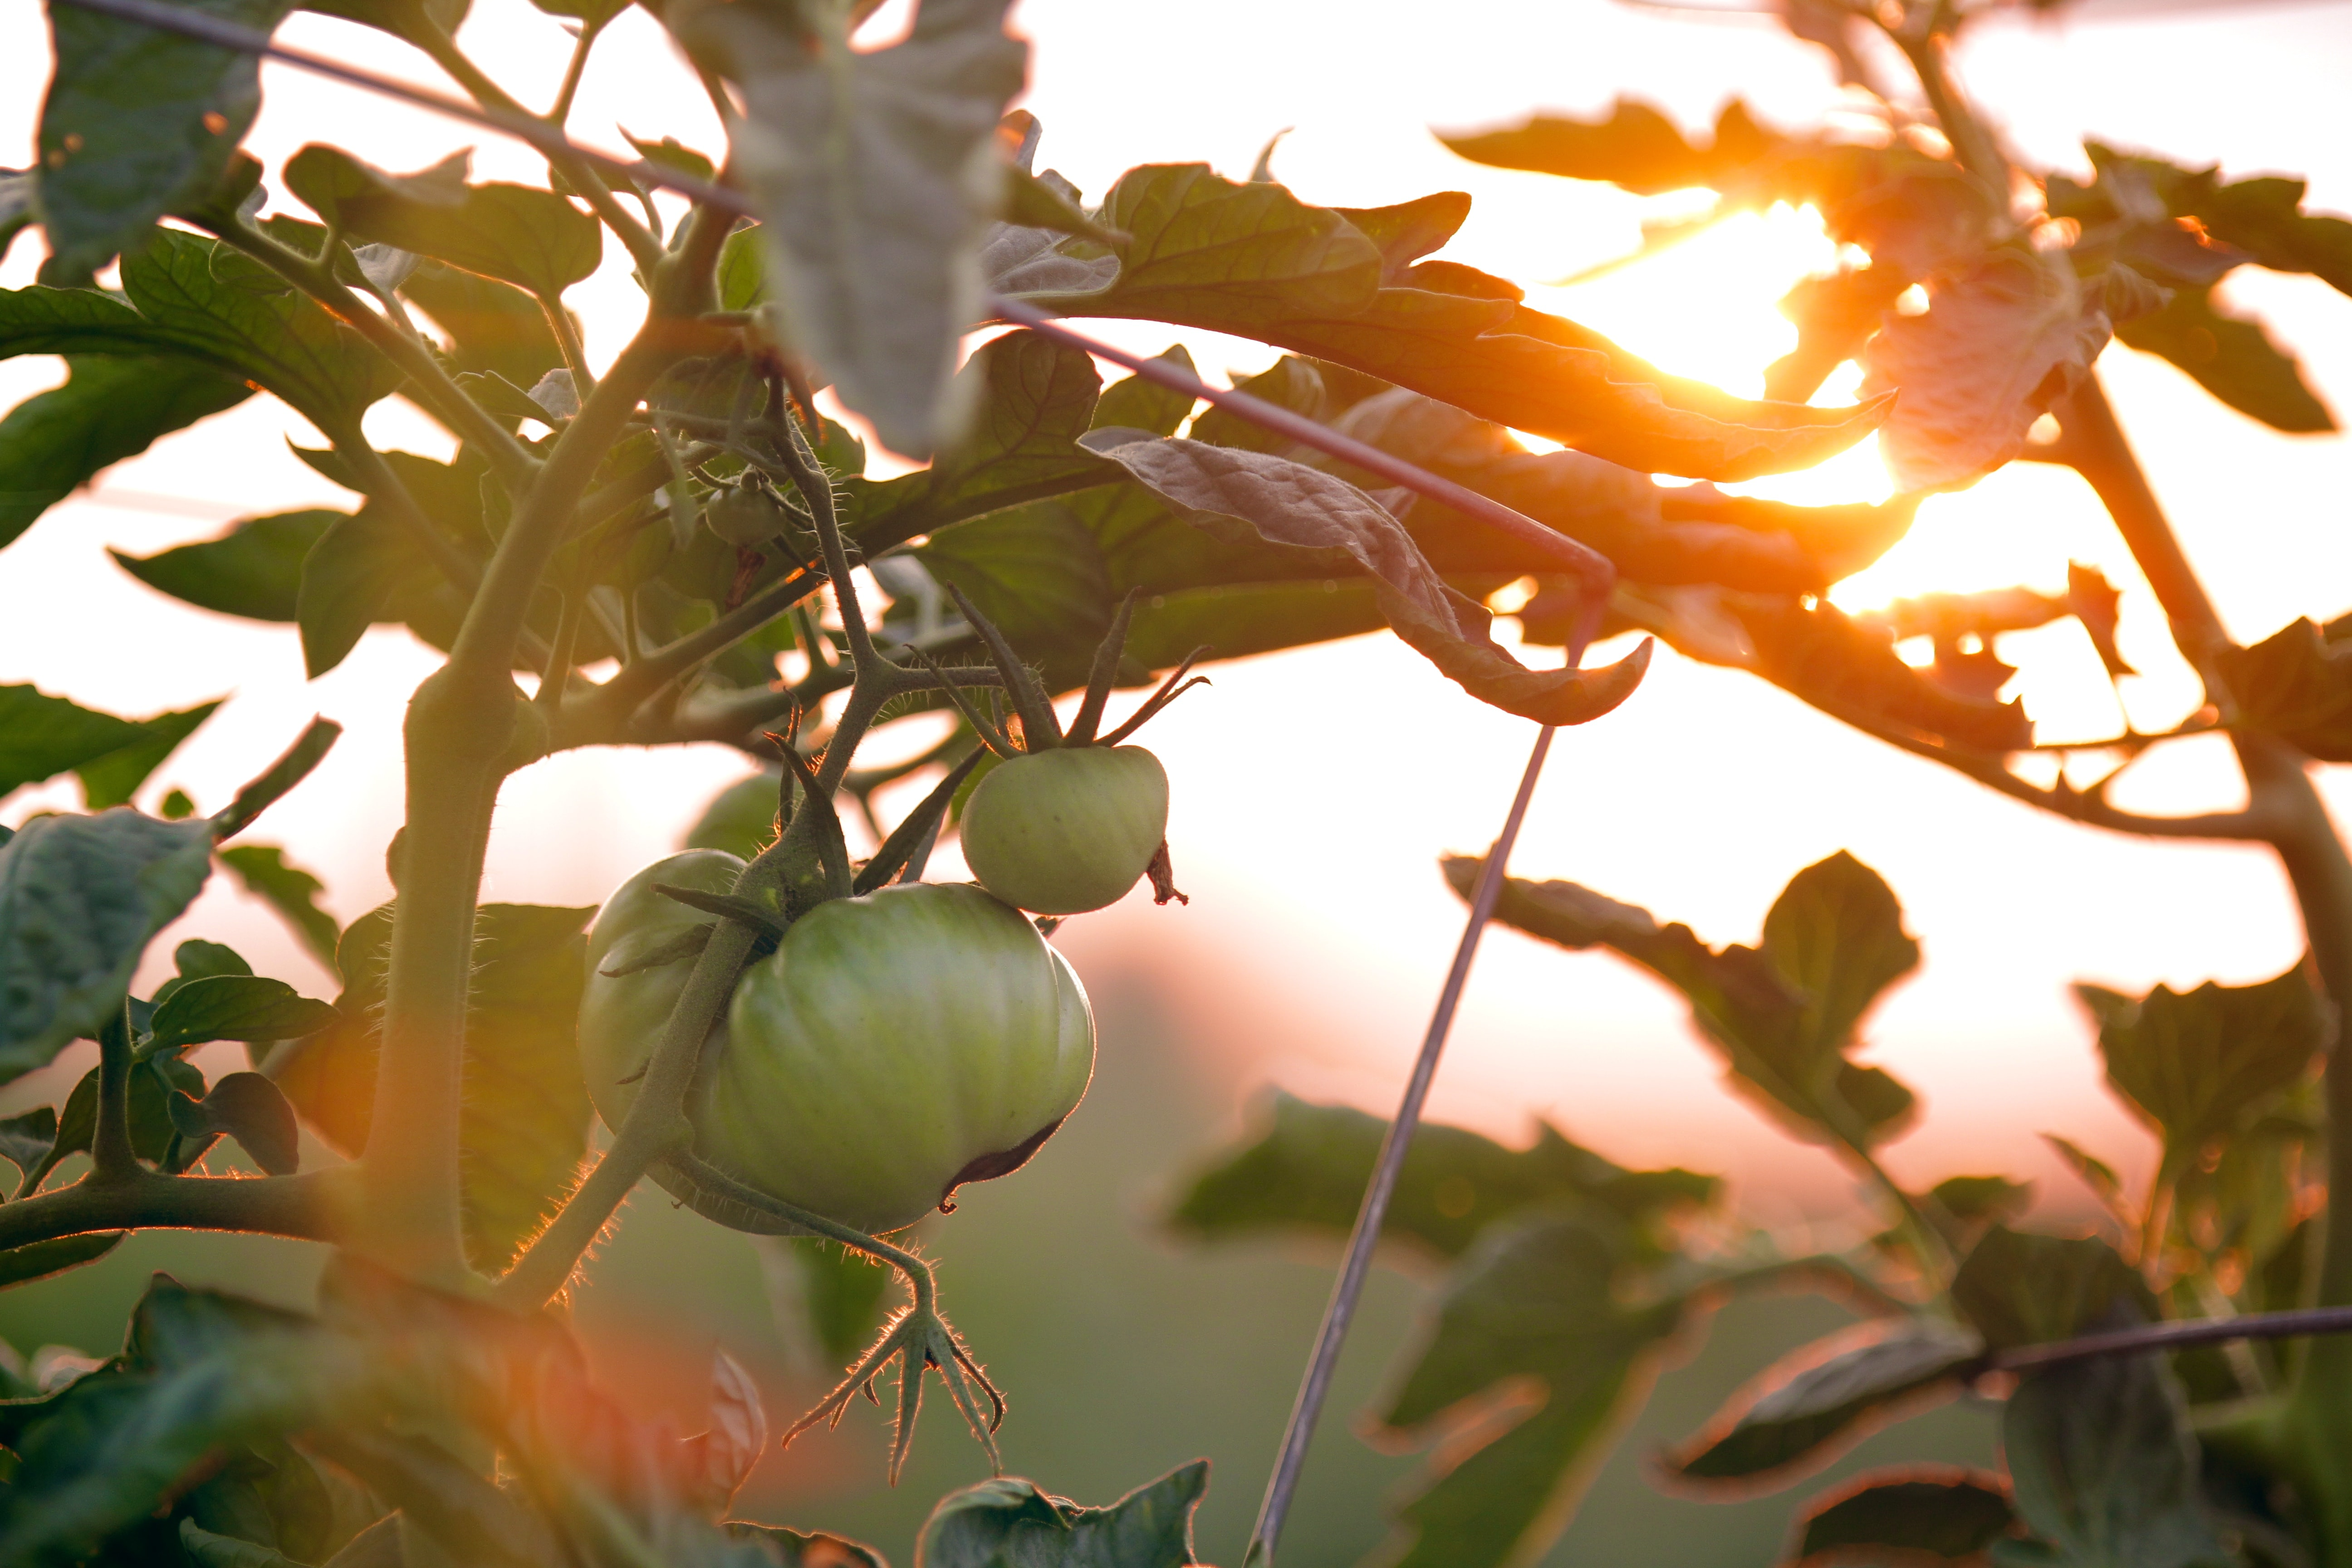 Green tomatoes growing on a vine at sunset